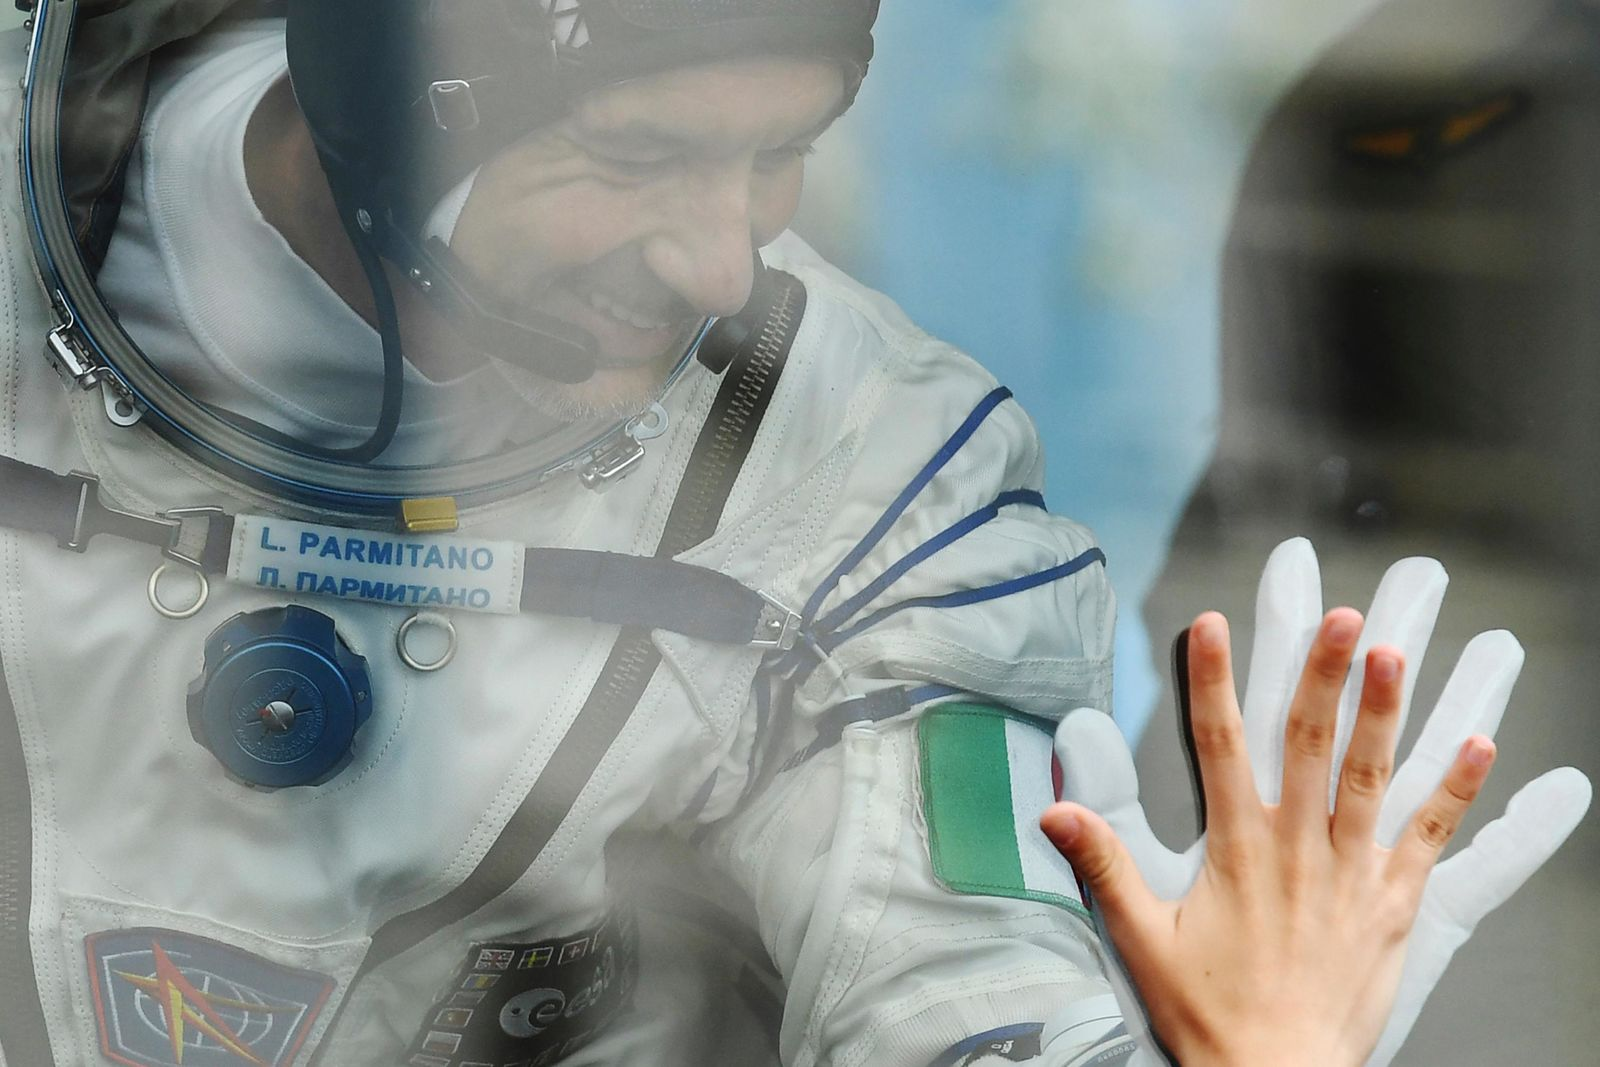 Italian astronaut Luca Parmitano, member of the main crew of the expedition to the International Space Station (ISS), gestures to his relatives from a bus prior the launch of Soyuz MS-13 space ship at the Russian leased Baikonur cosmodrome, Kazakhstan, Saturday, July 20, 2019. (AP Photo/, Pool)